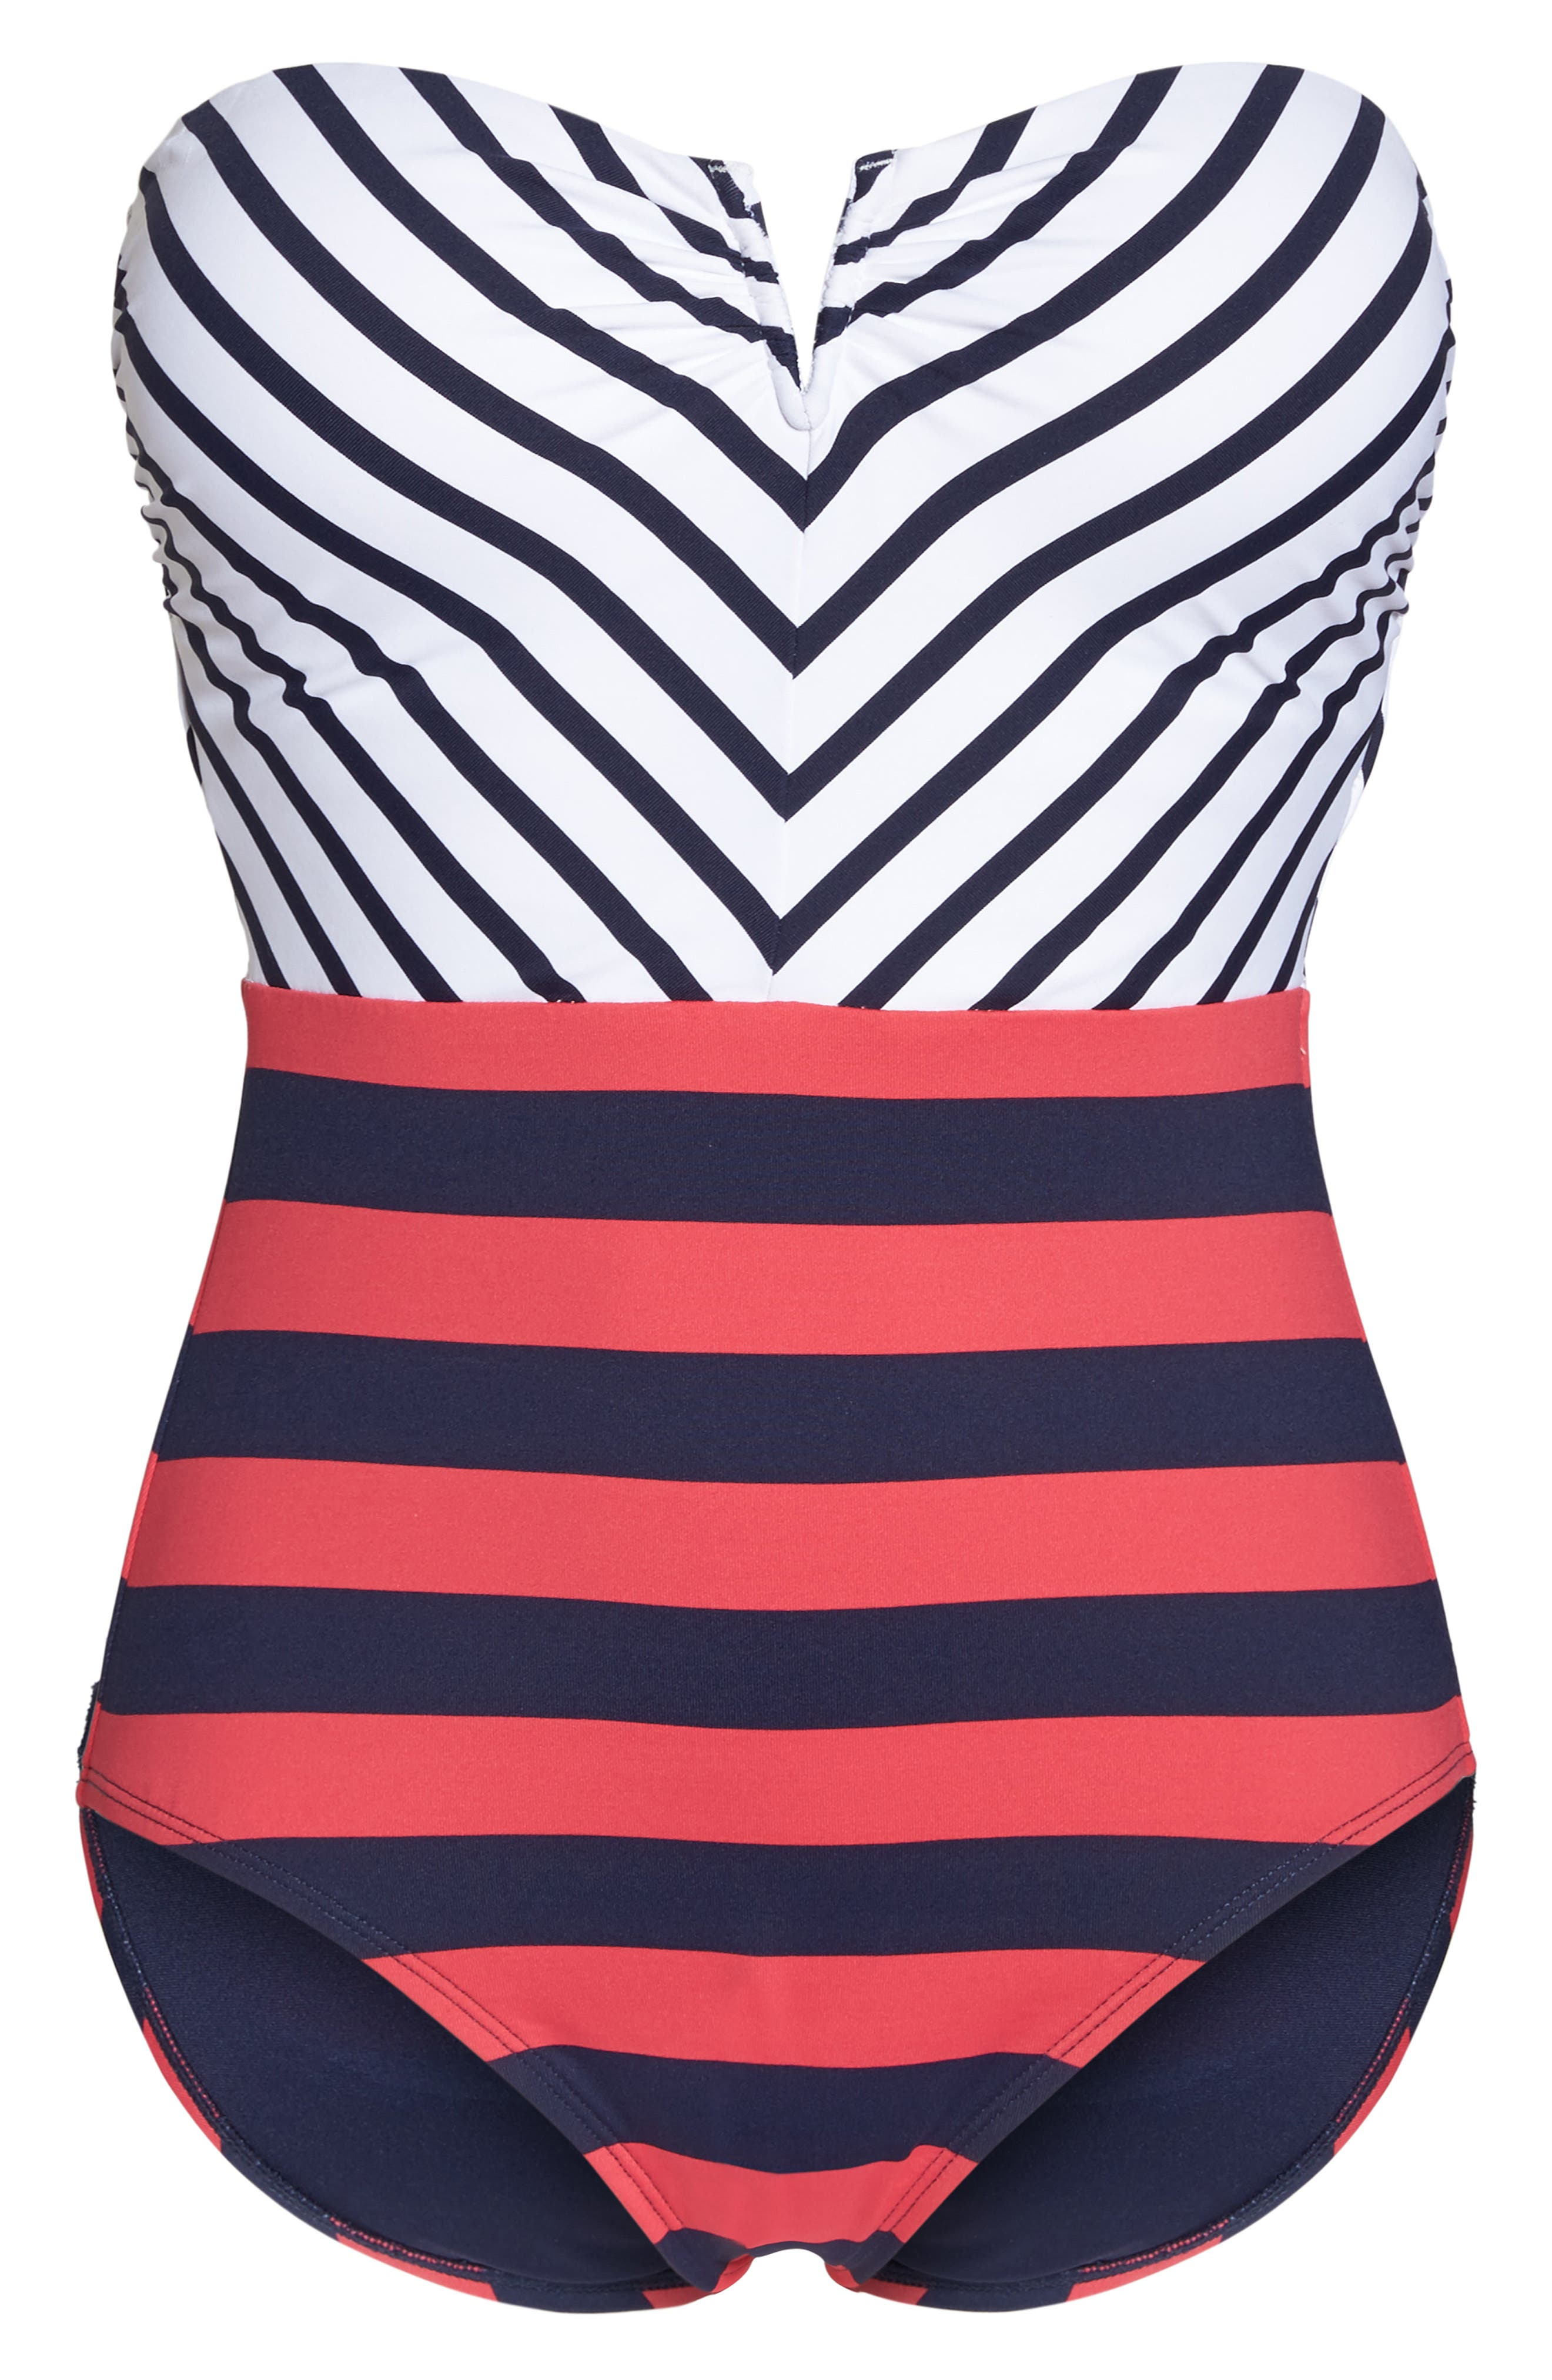 Channel Surfing Strapless One-Piece Swimsuit,                             Alternate thumbnail 6, color,                             Mare Blue